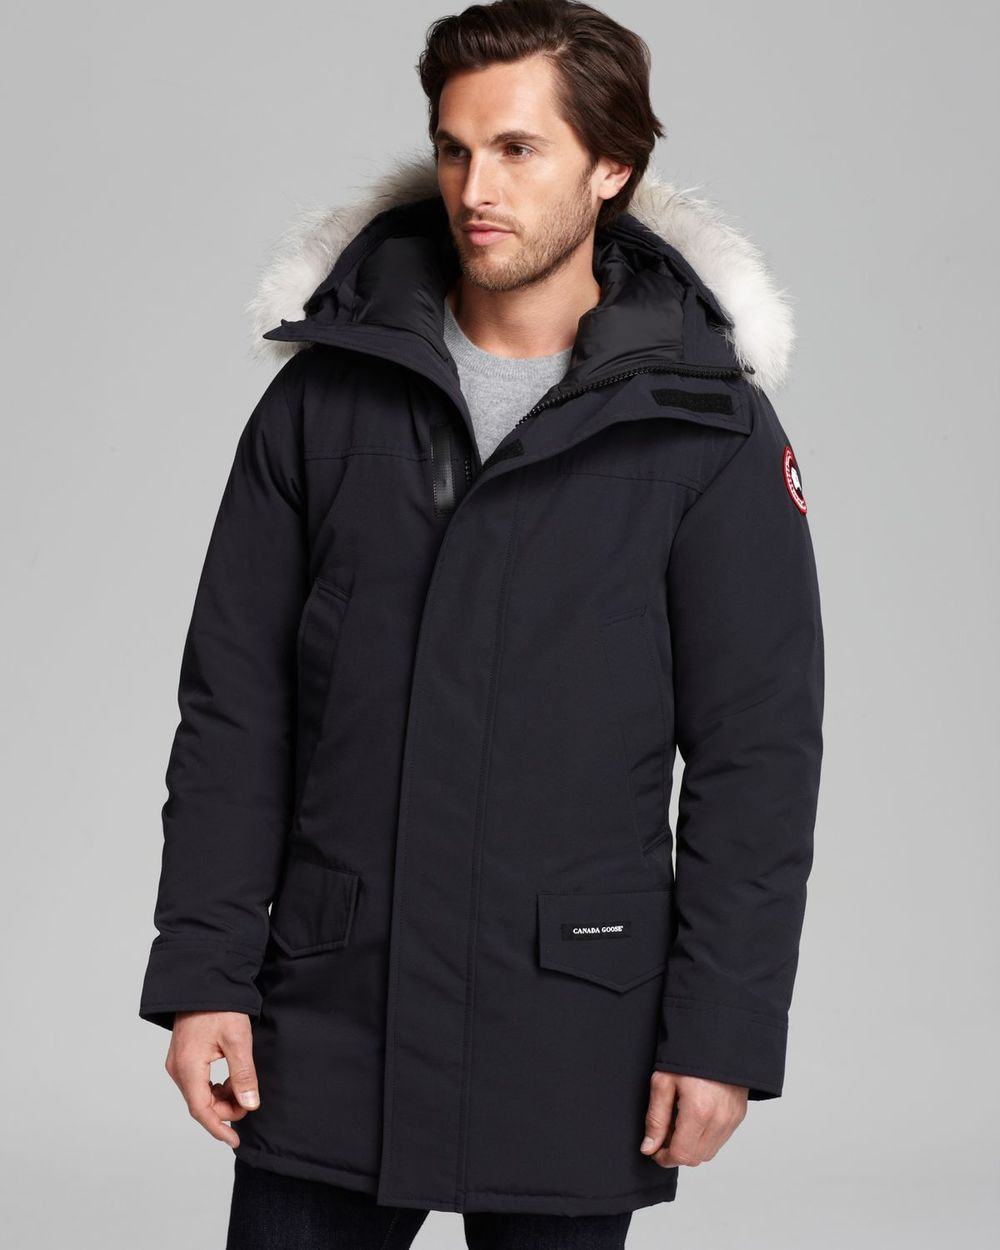 Canada Goose womens sale price - 9 Canada Goose Alternatives To Fit Every Budget �� AS RAKESTRAW ...